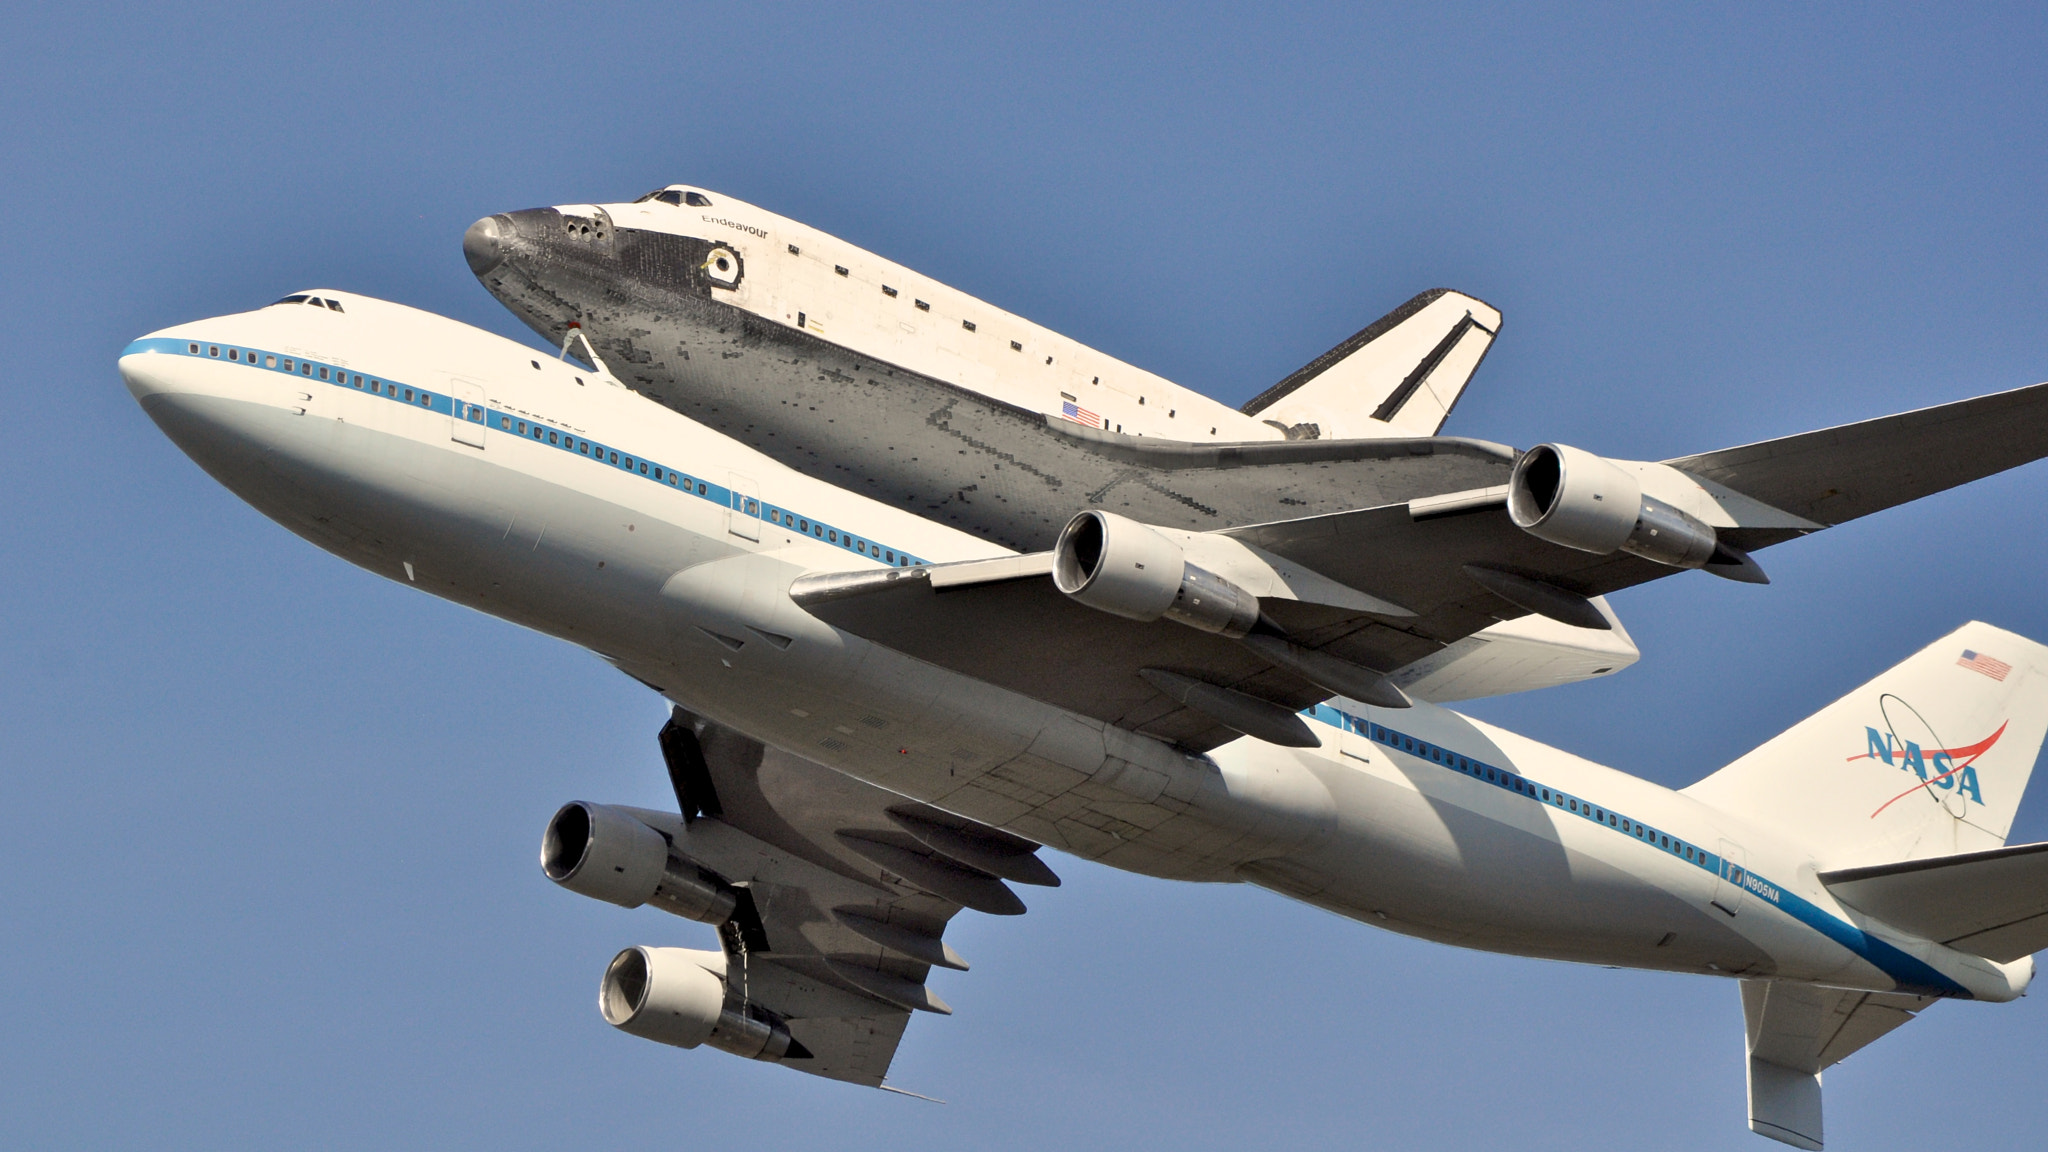 Photograph Endeavour by Roach   on 500px